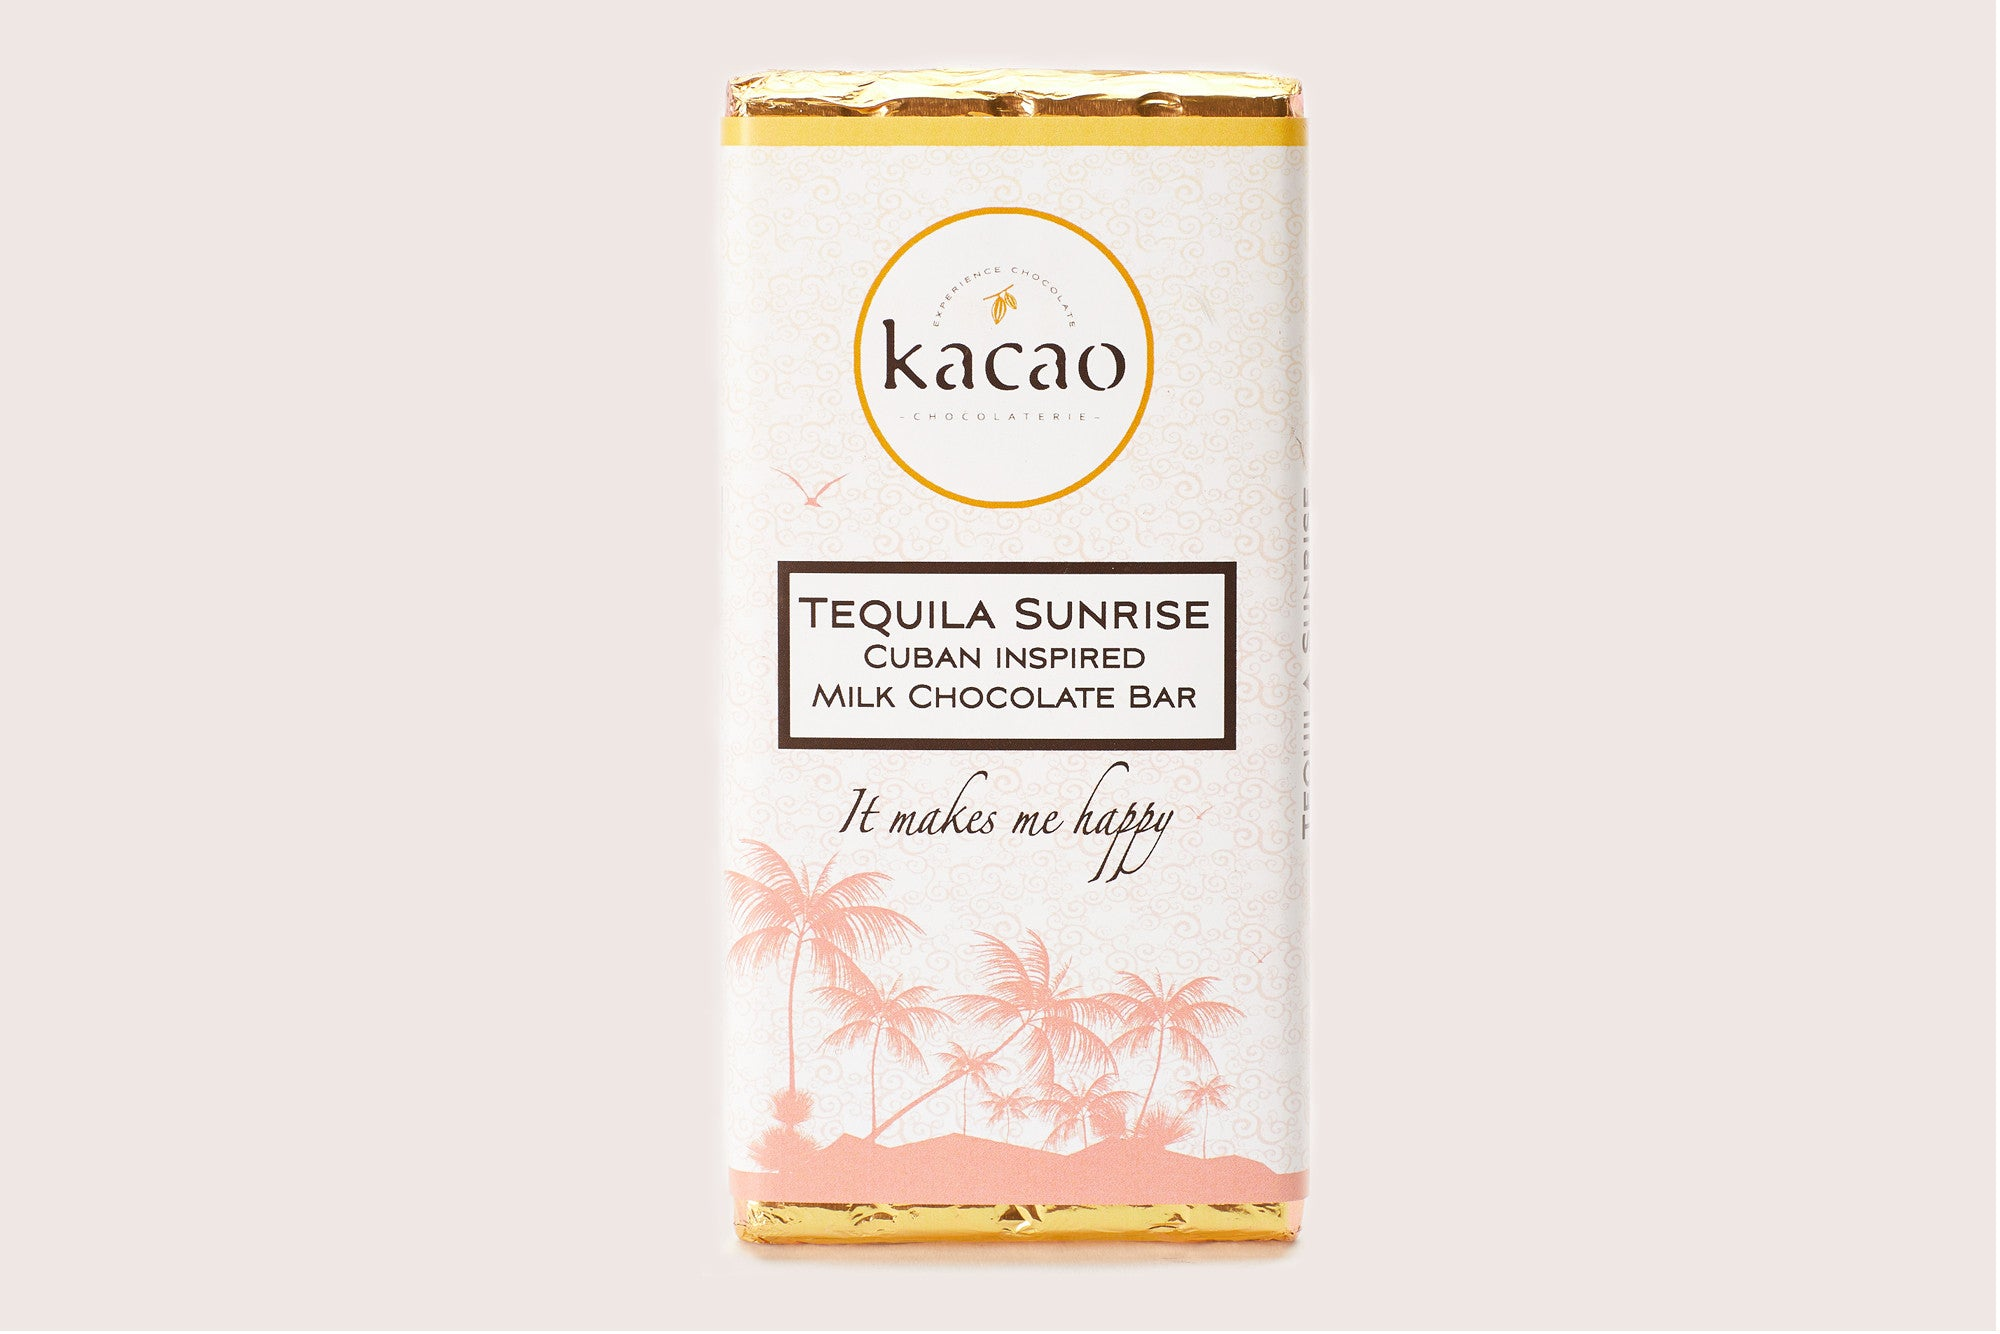 Tequila Sunrise Milk Chocolate Bar